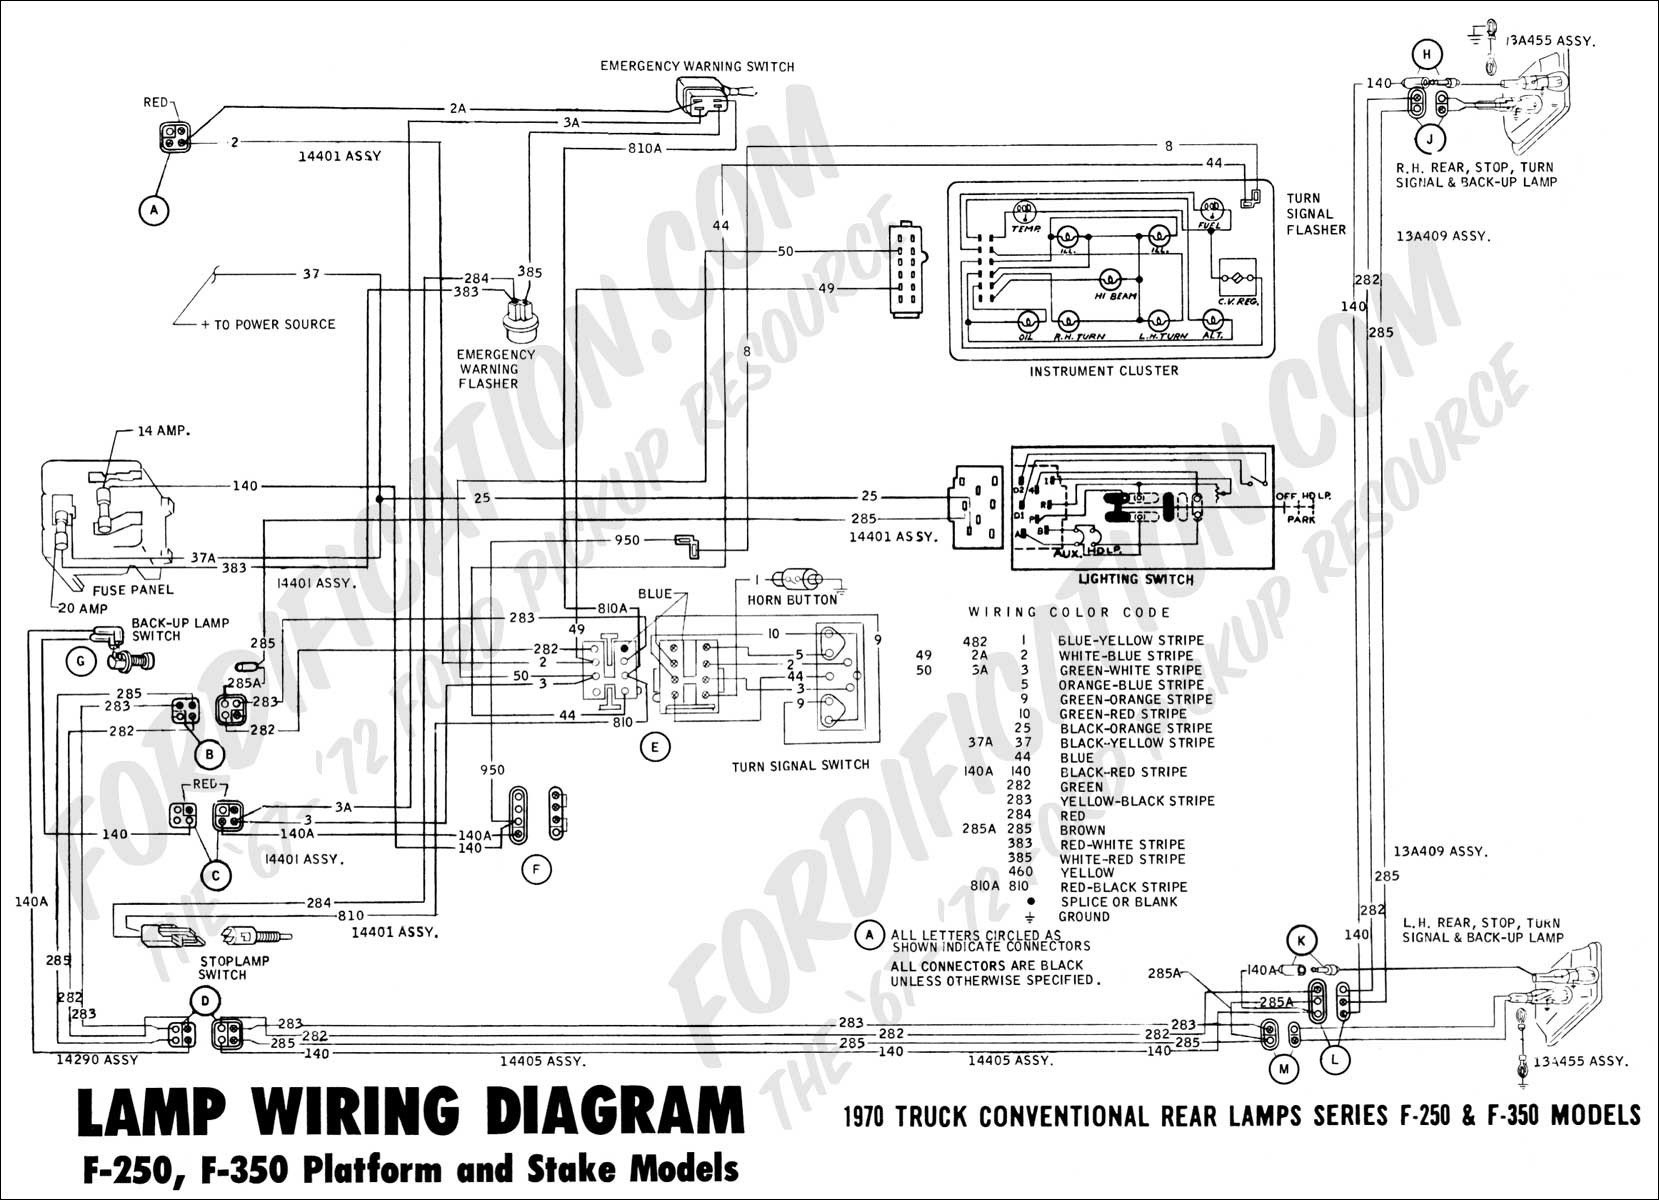 2000 Ford F150 Starter Wiring Diagram List Of Schematic Circuit Headlight For 05 Experts U2022 Rh Evilcloud Co Uk Solenoid